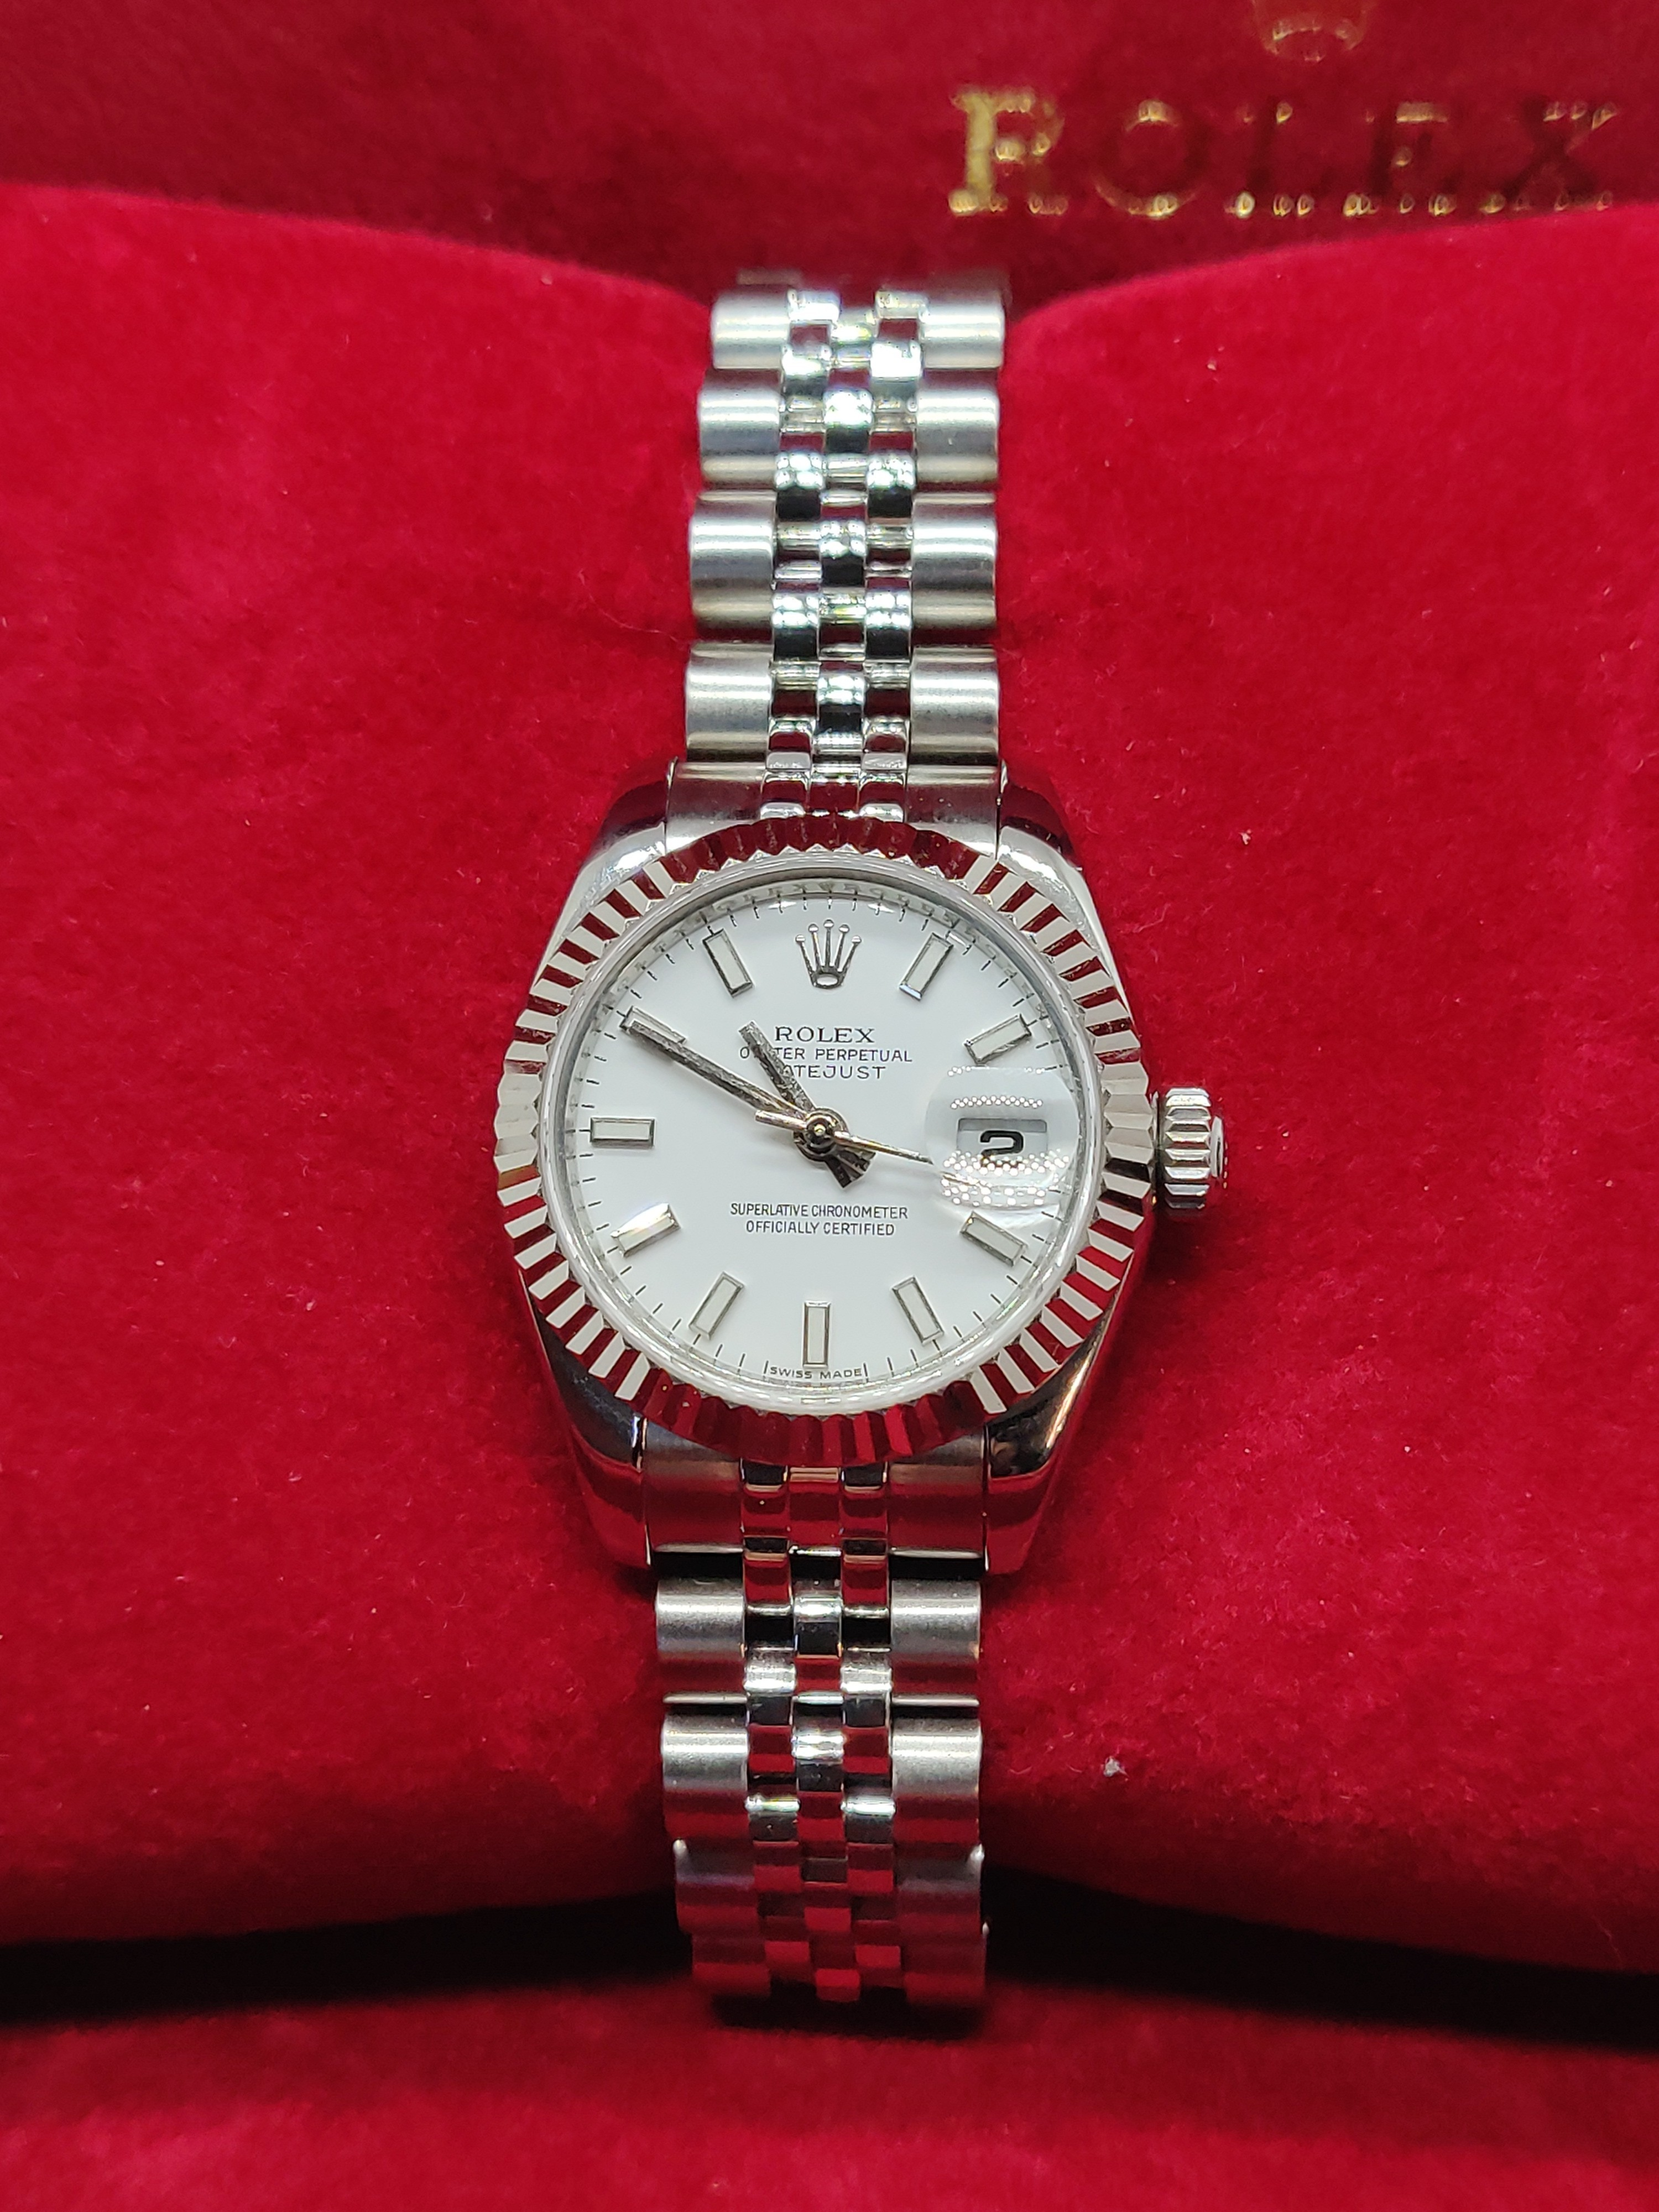 Rolex Lady Datejust 26 in Stainless Steel and White Gold